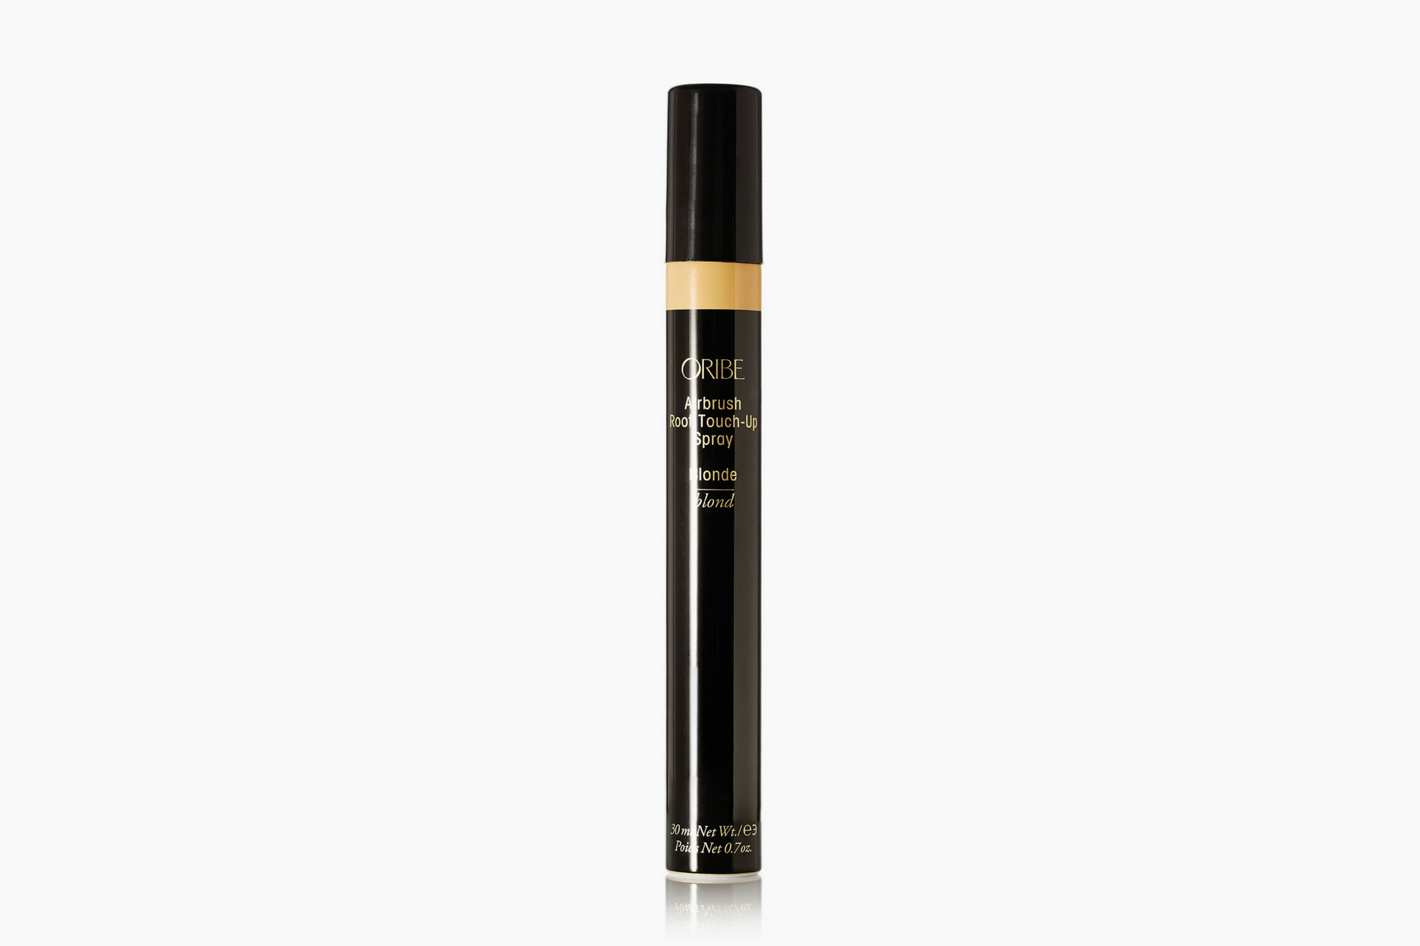 ORIBE Airbrush Root Touch-Up Spray - Blonde,